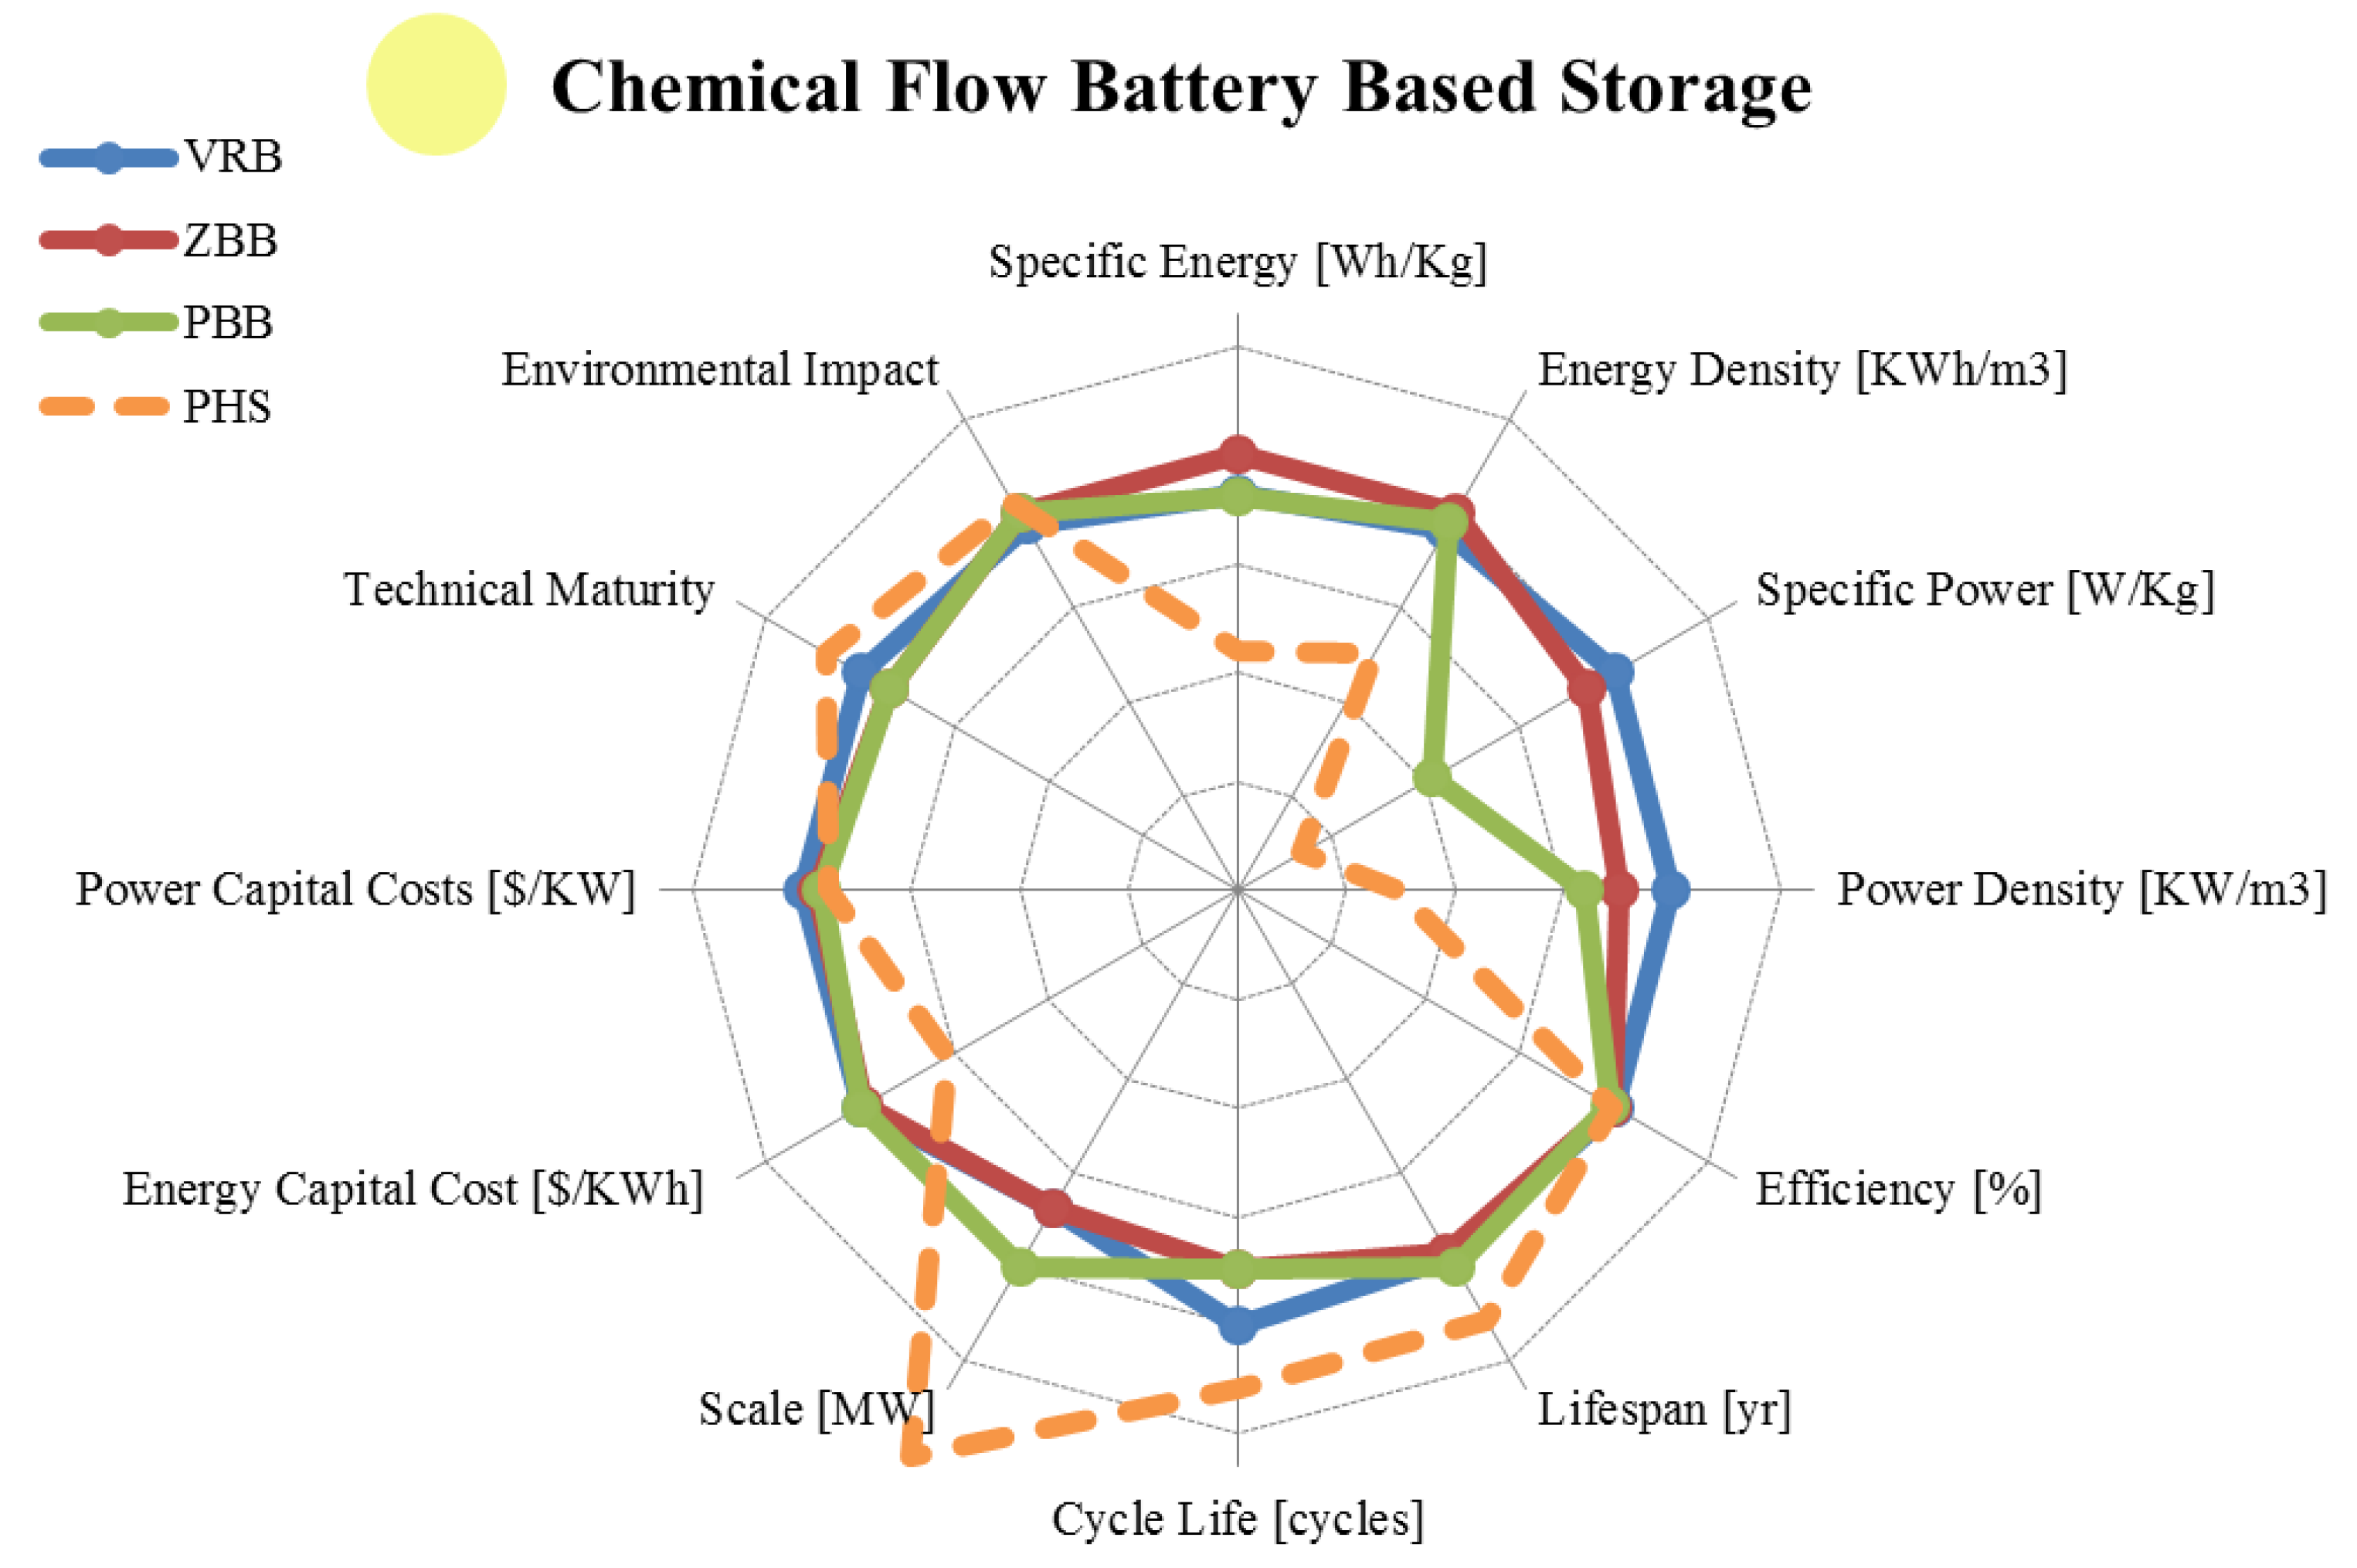 Energies Free Full Text A Numerical And Graphical Review Of Dry Cell Battery Diagram On Parts Alkaline 08 00172 G009 1024 Figure 9 Comparing Chemical Storage Generation In Flow Batteries